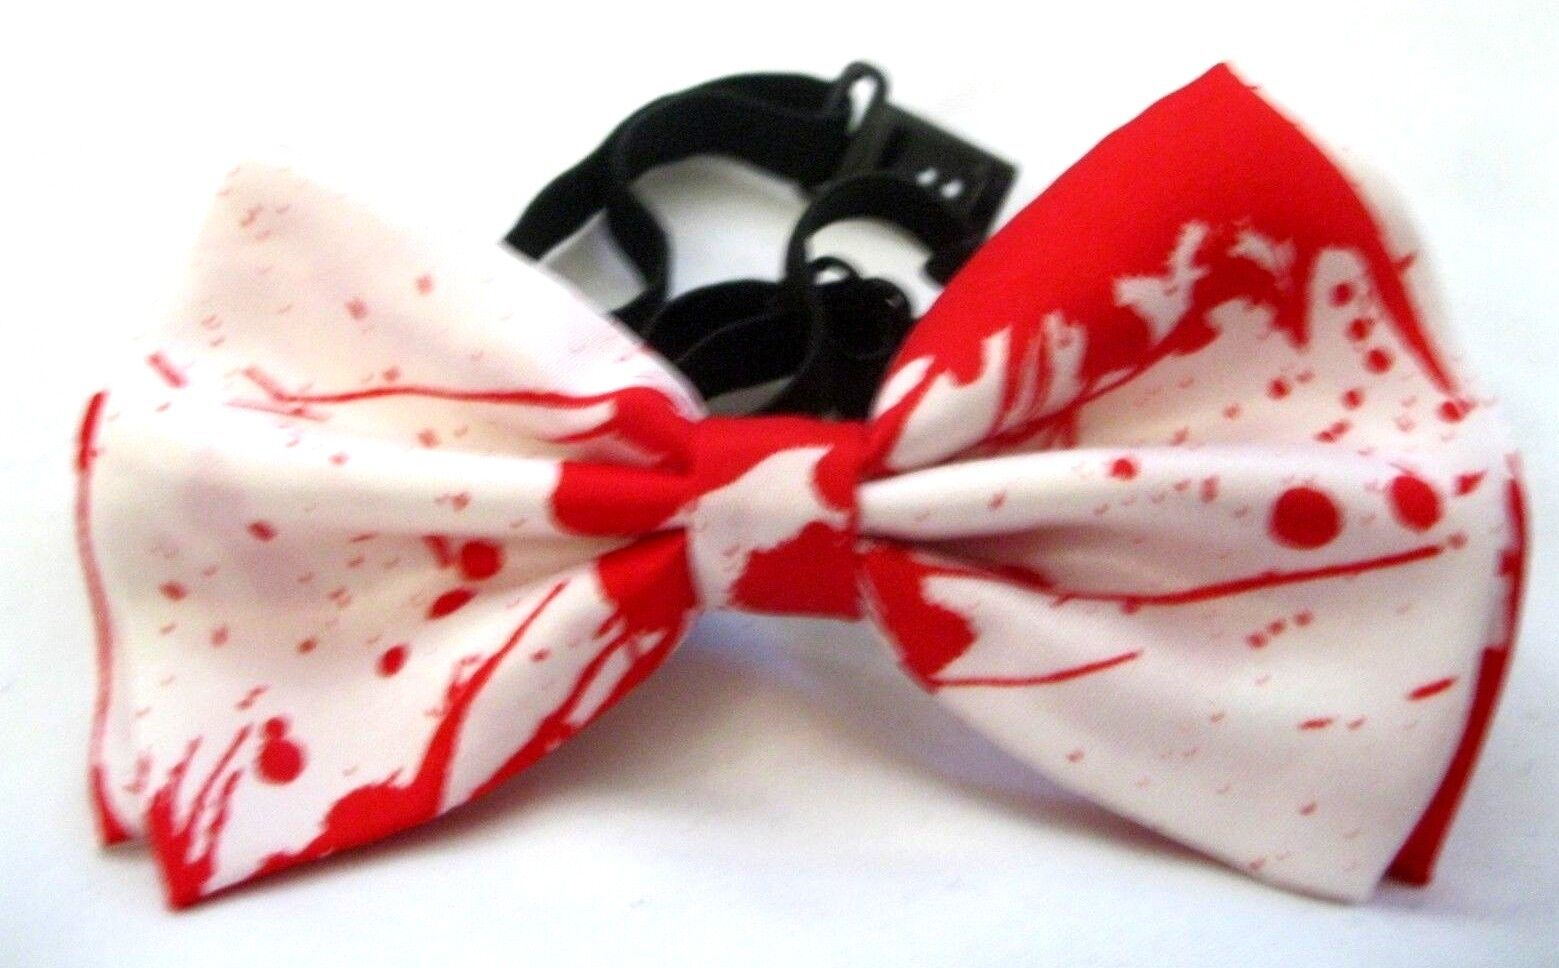 UNISEX BLOOD SPLATTERED WHITE RED PAINT BALL ADJ STRAP  BOW TIE BOW TIE-NEW!